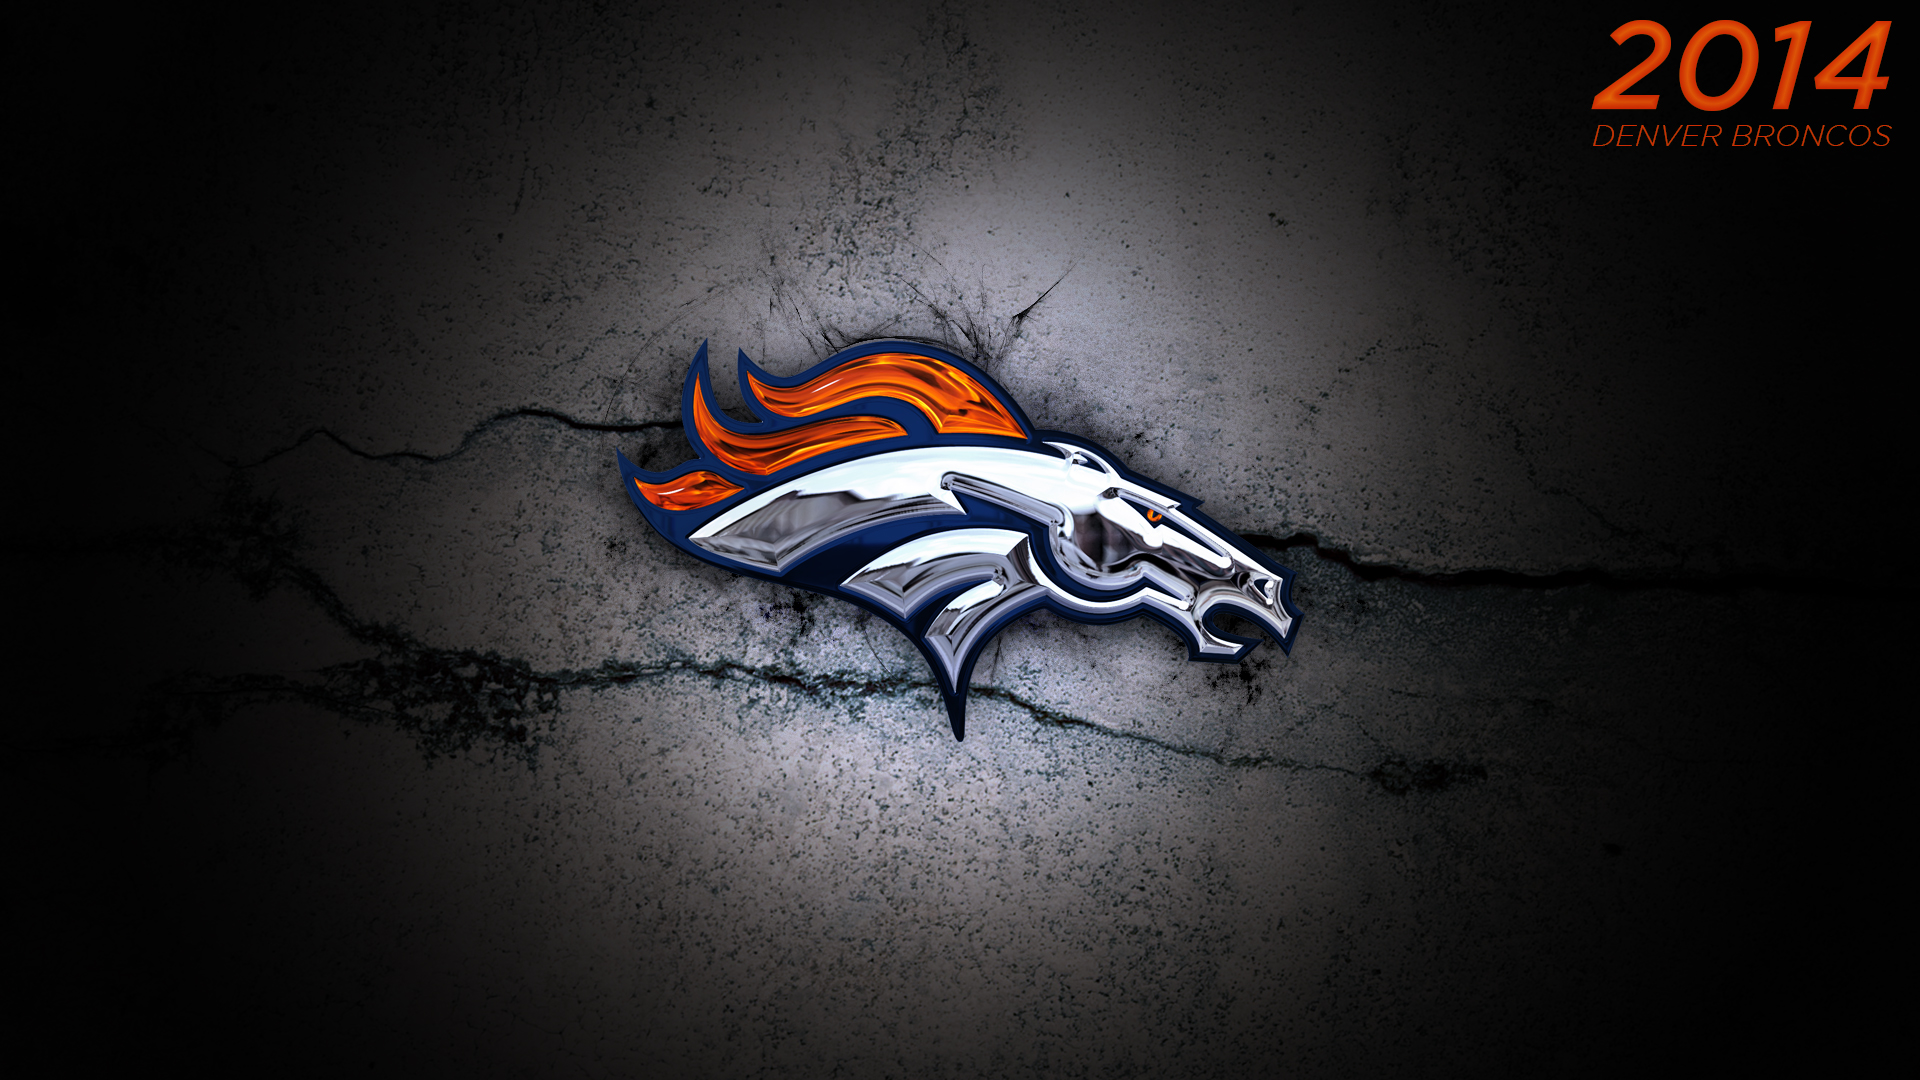 Broncos Wallpaper